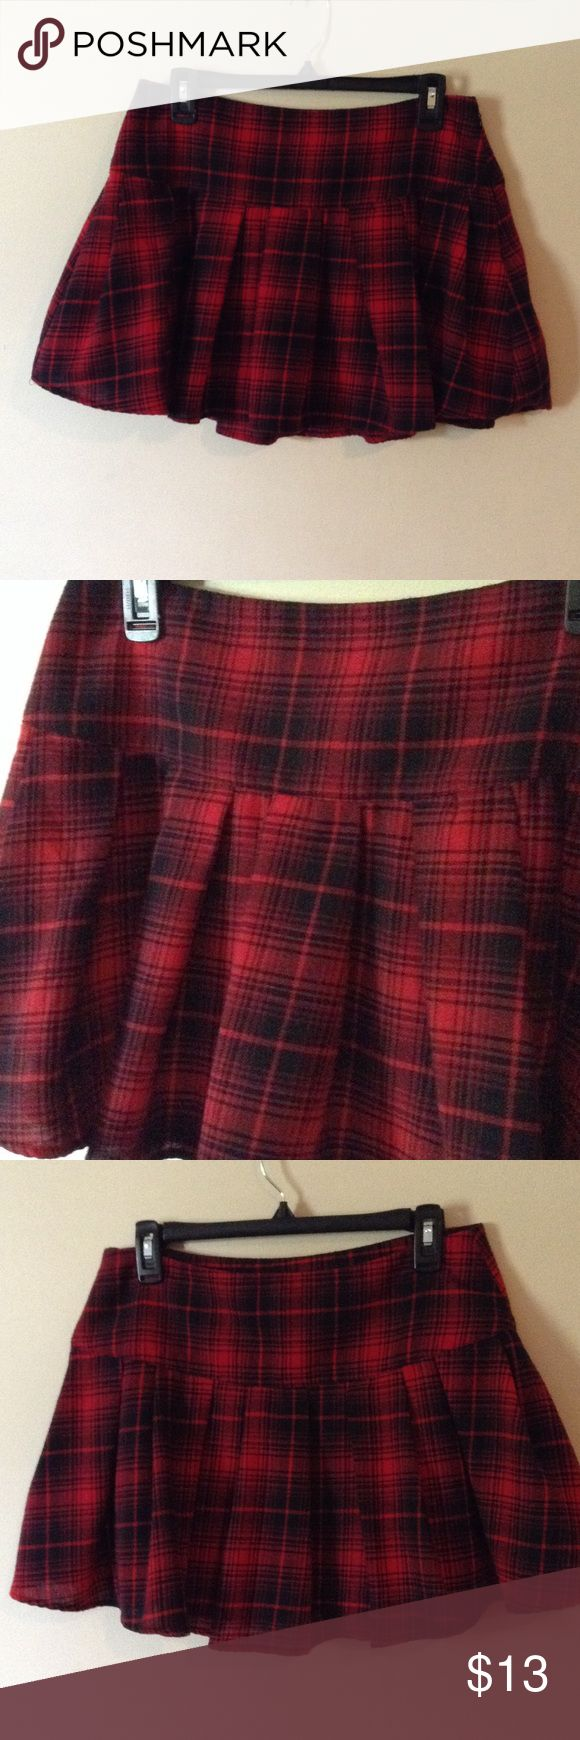 """Red and black plaid mini skirt This can be worn many ways, with button downs, polos, tees, even dress it up as a schoolgirl outfit for Halloween, will fit up to 30"""" waist, length is 14.5"""" Forever 21 Skirts Mini"""